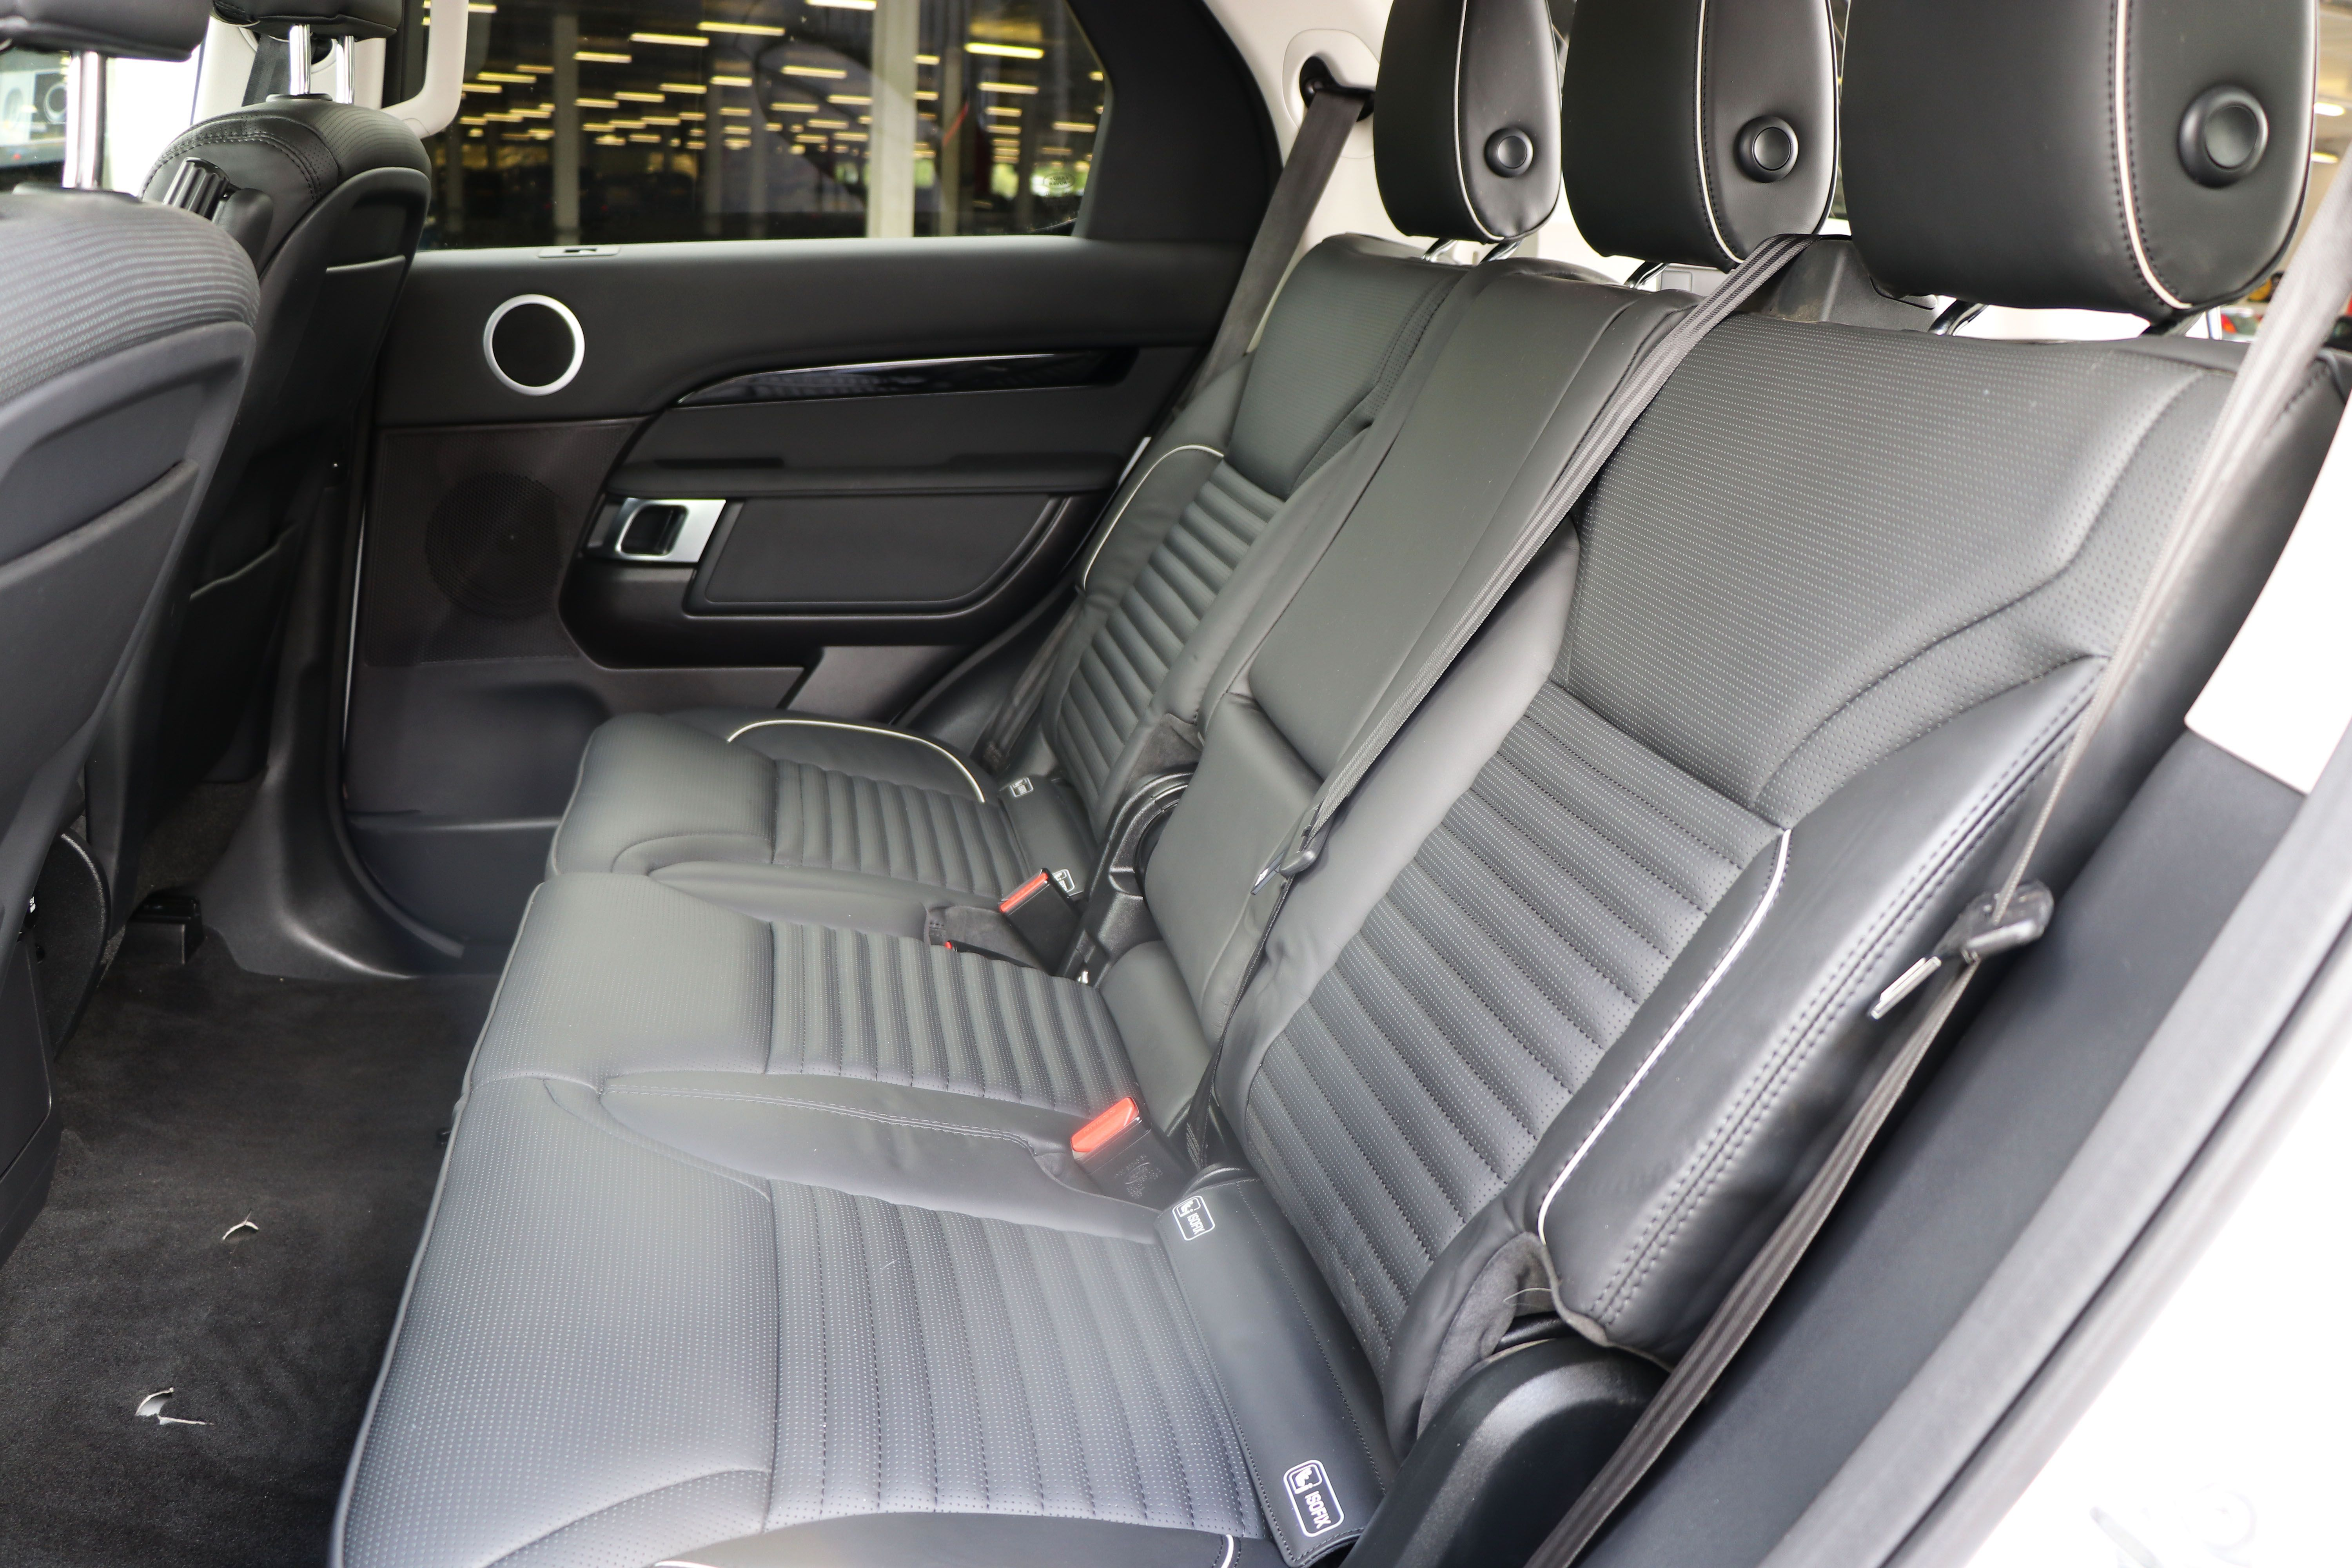 Rear Seat Conversion for the pre-owned Land Rover Discovery 5 Commercial Vehicle